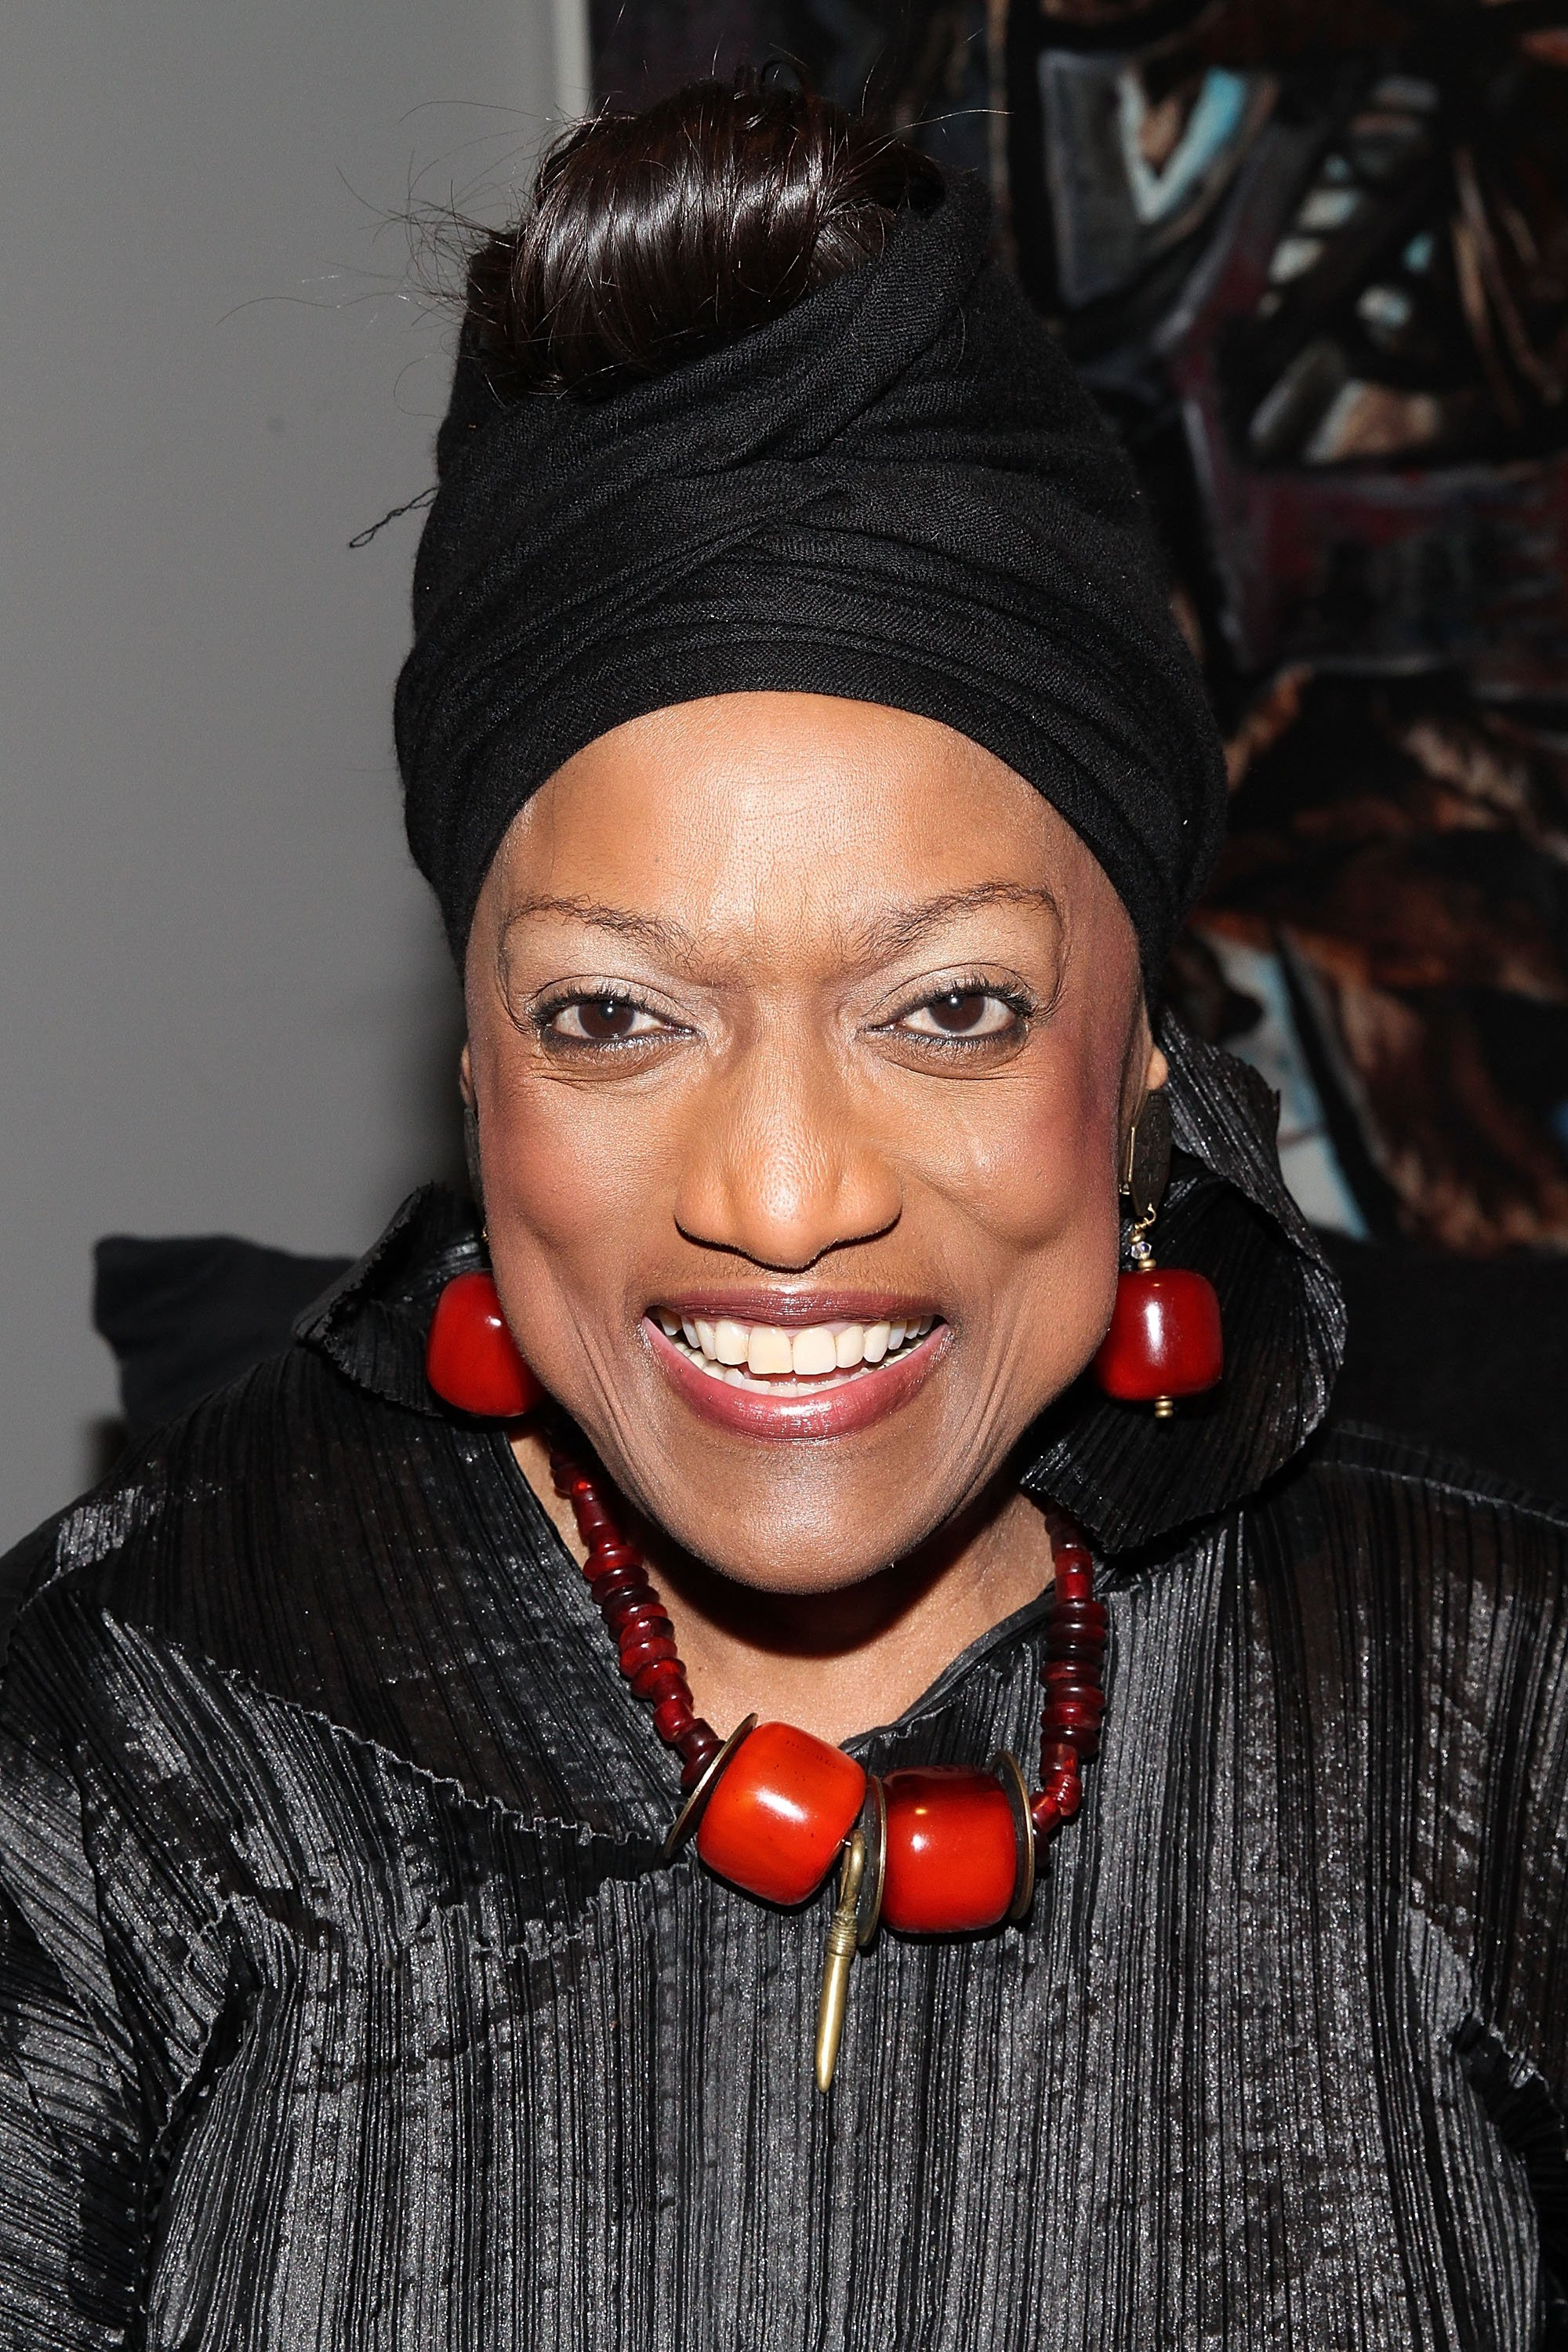 Jessye Norman at the ACRIA annual holiday dinner on December 11, 2013 | Photo: Getty Images